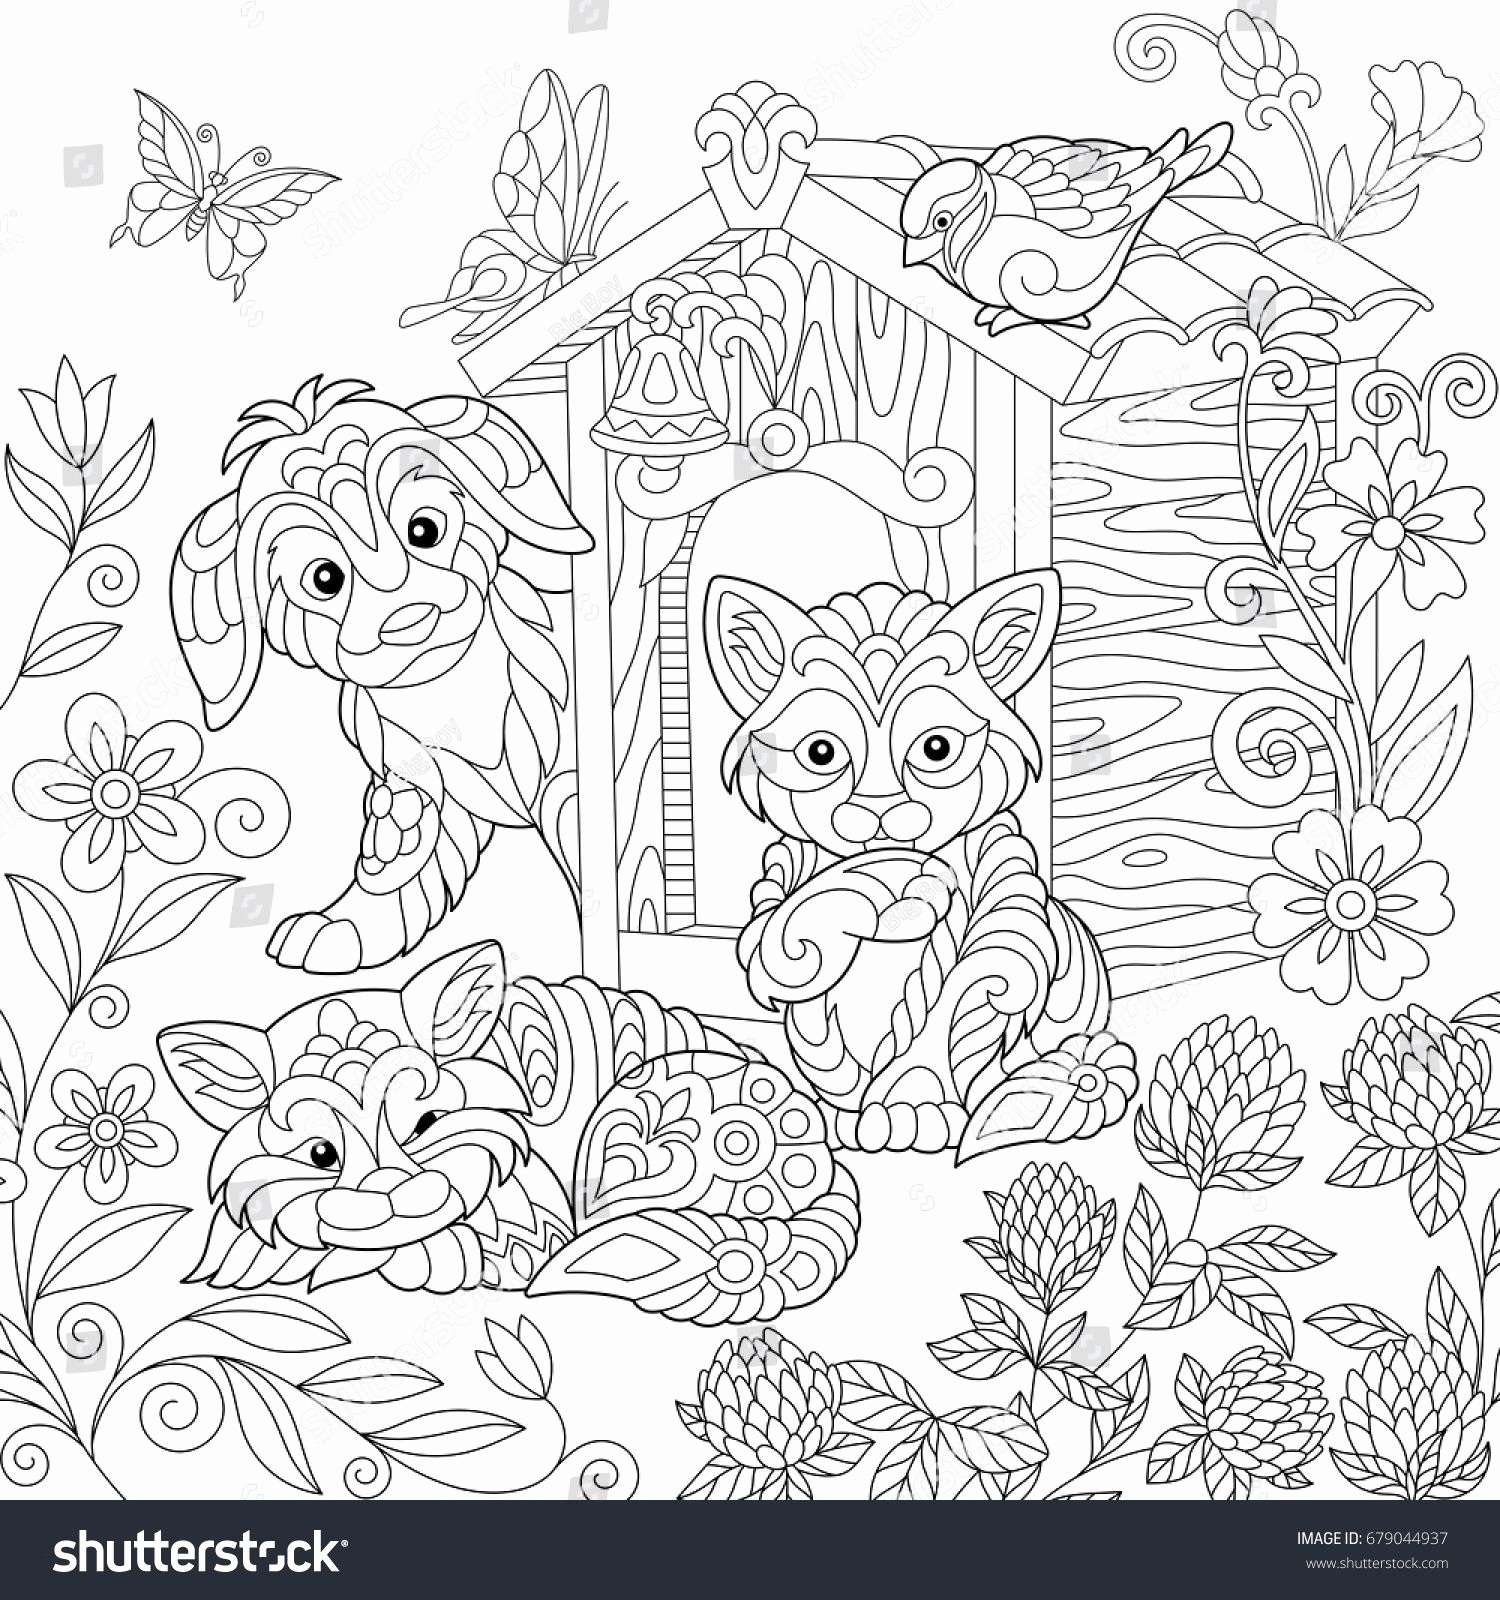 Christmas Online Coloring Pages Free With